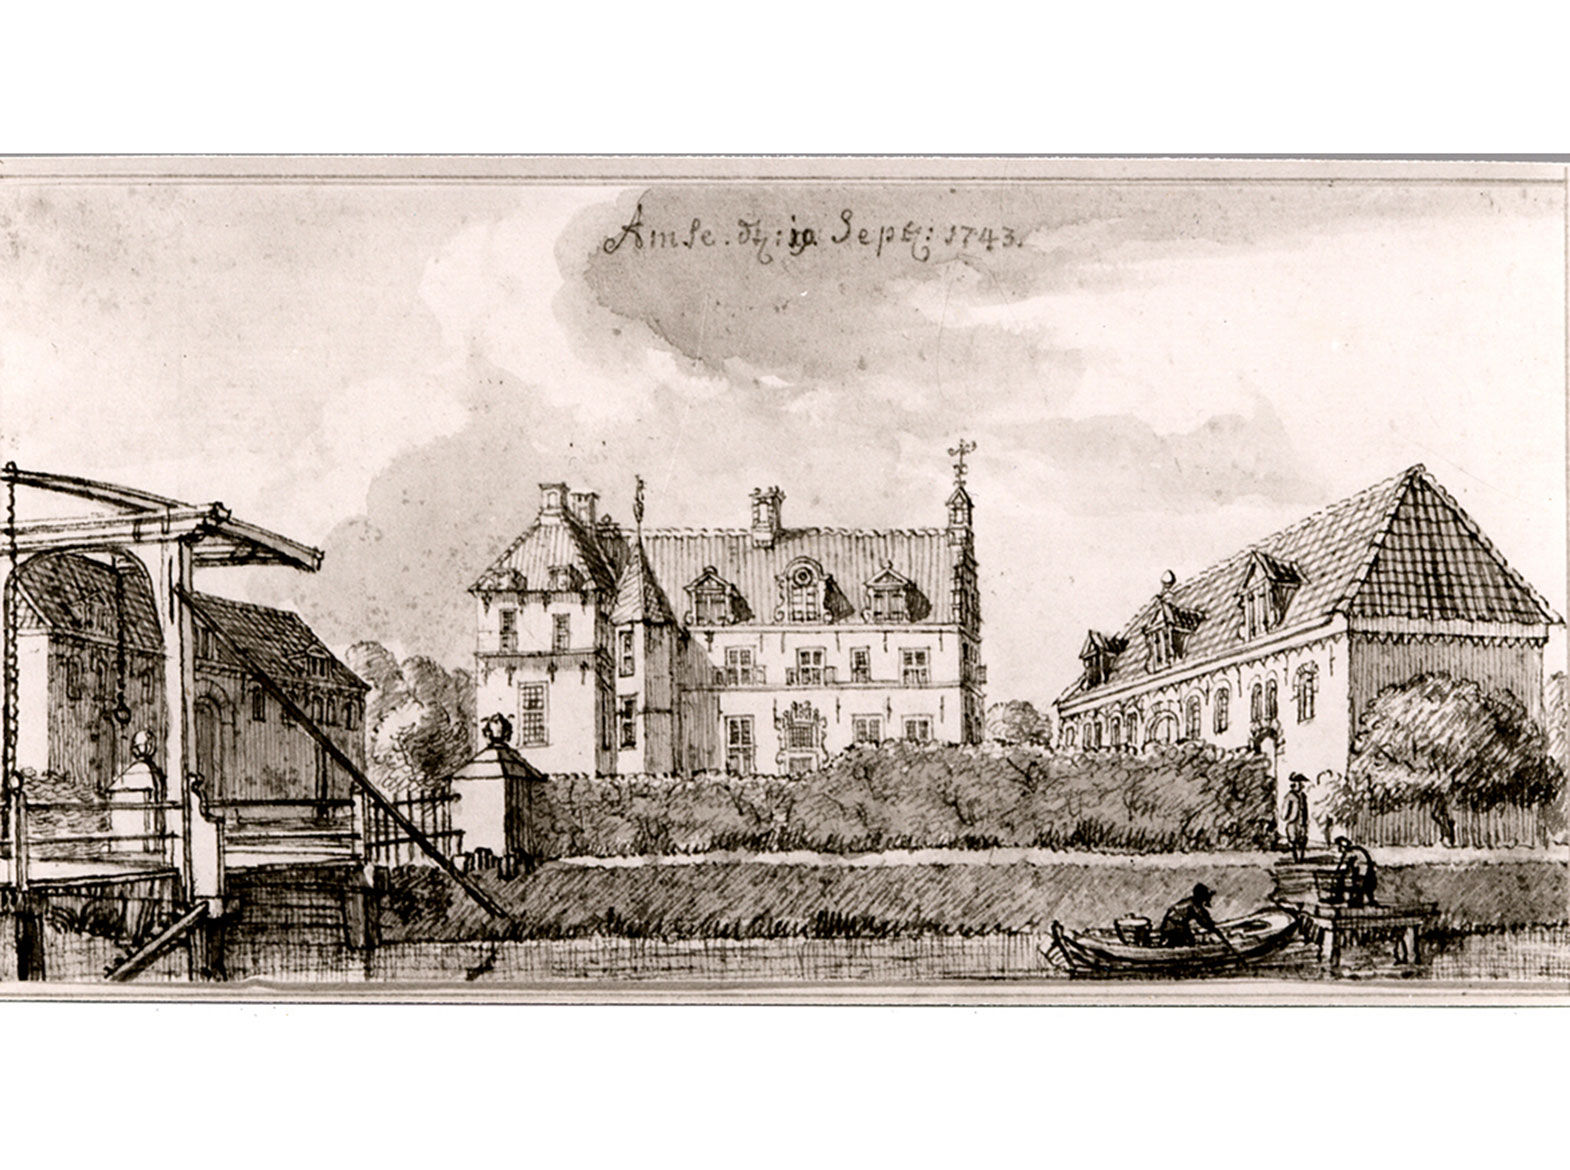 Ampsen in 1743